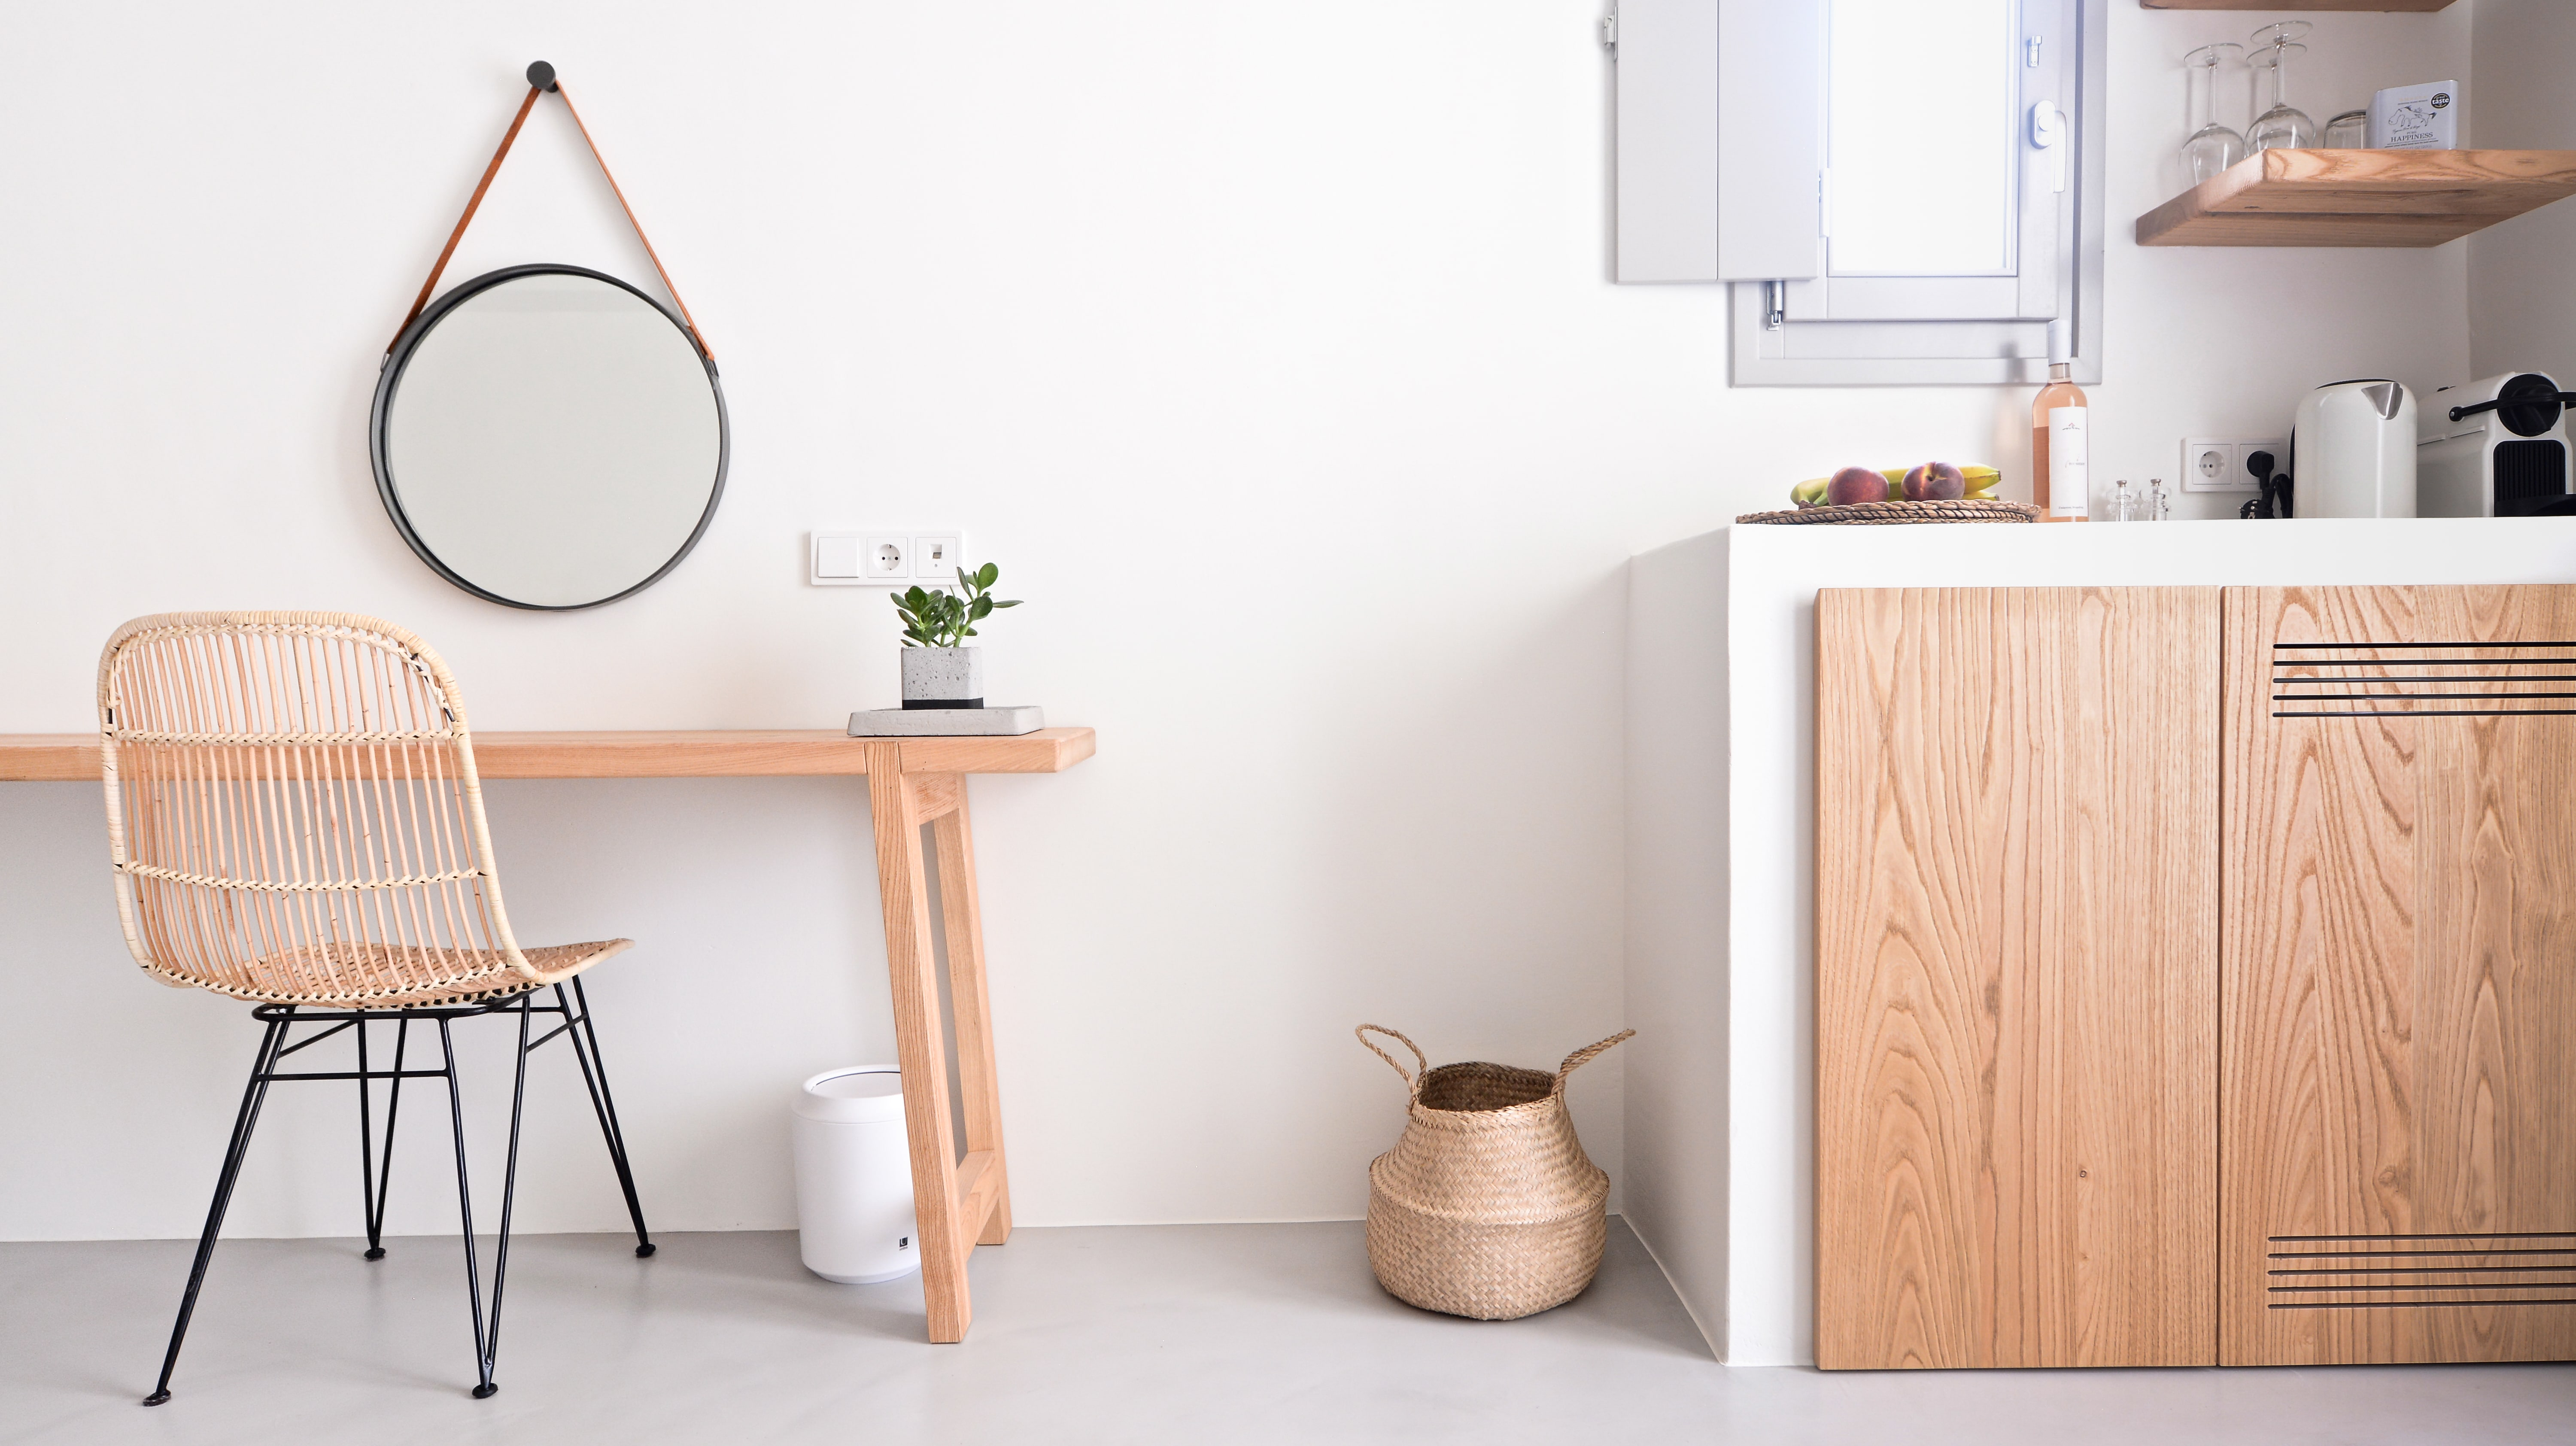 small stylish hotel desk and kitchenette detail